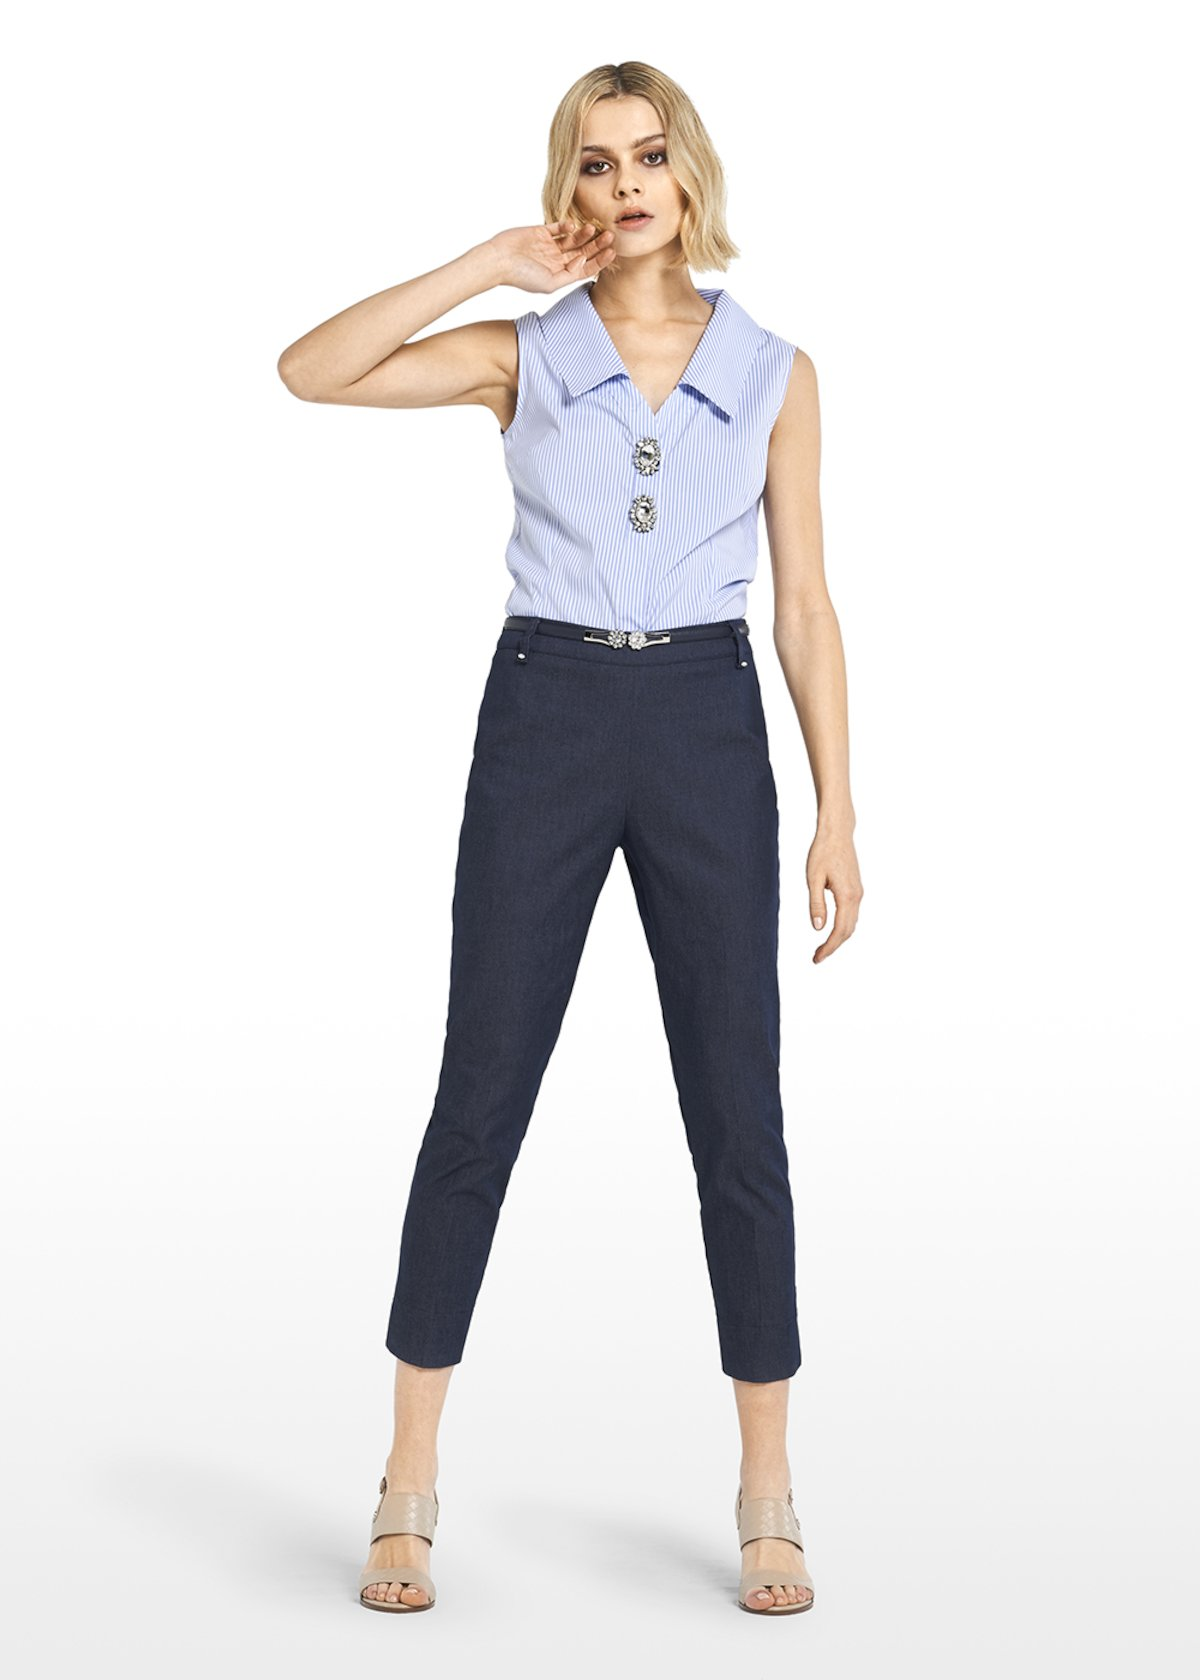 Preston denim Capri trousers with rhinestone details - Blue - Woman - Category image